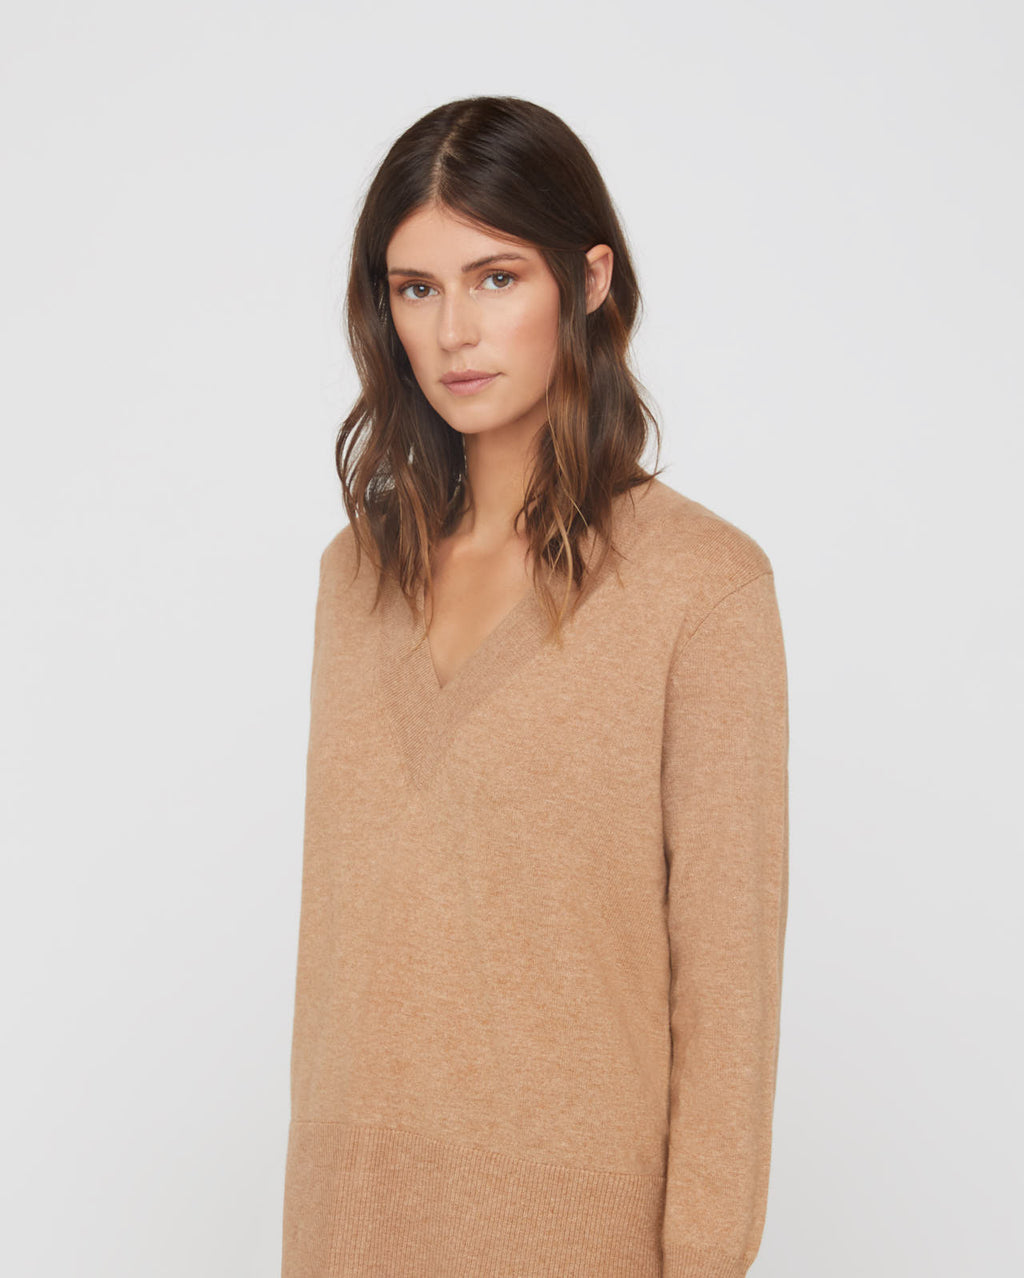 The Lana Sweater in Wheat